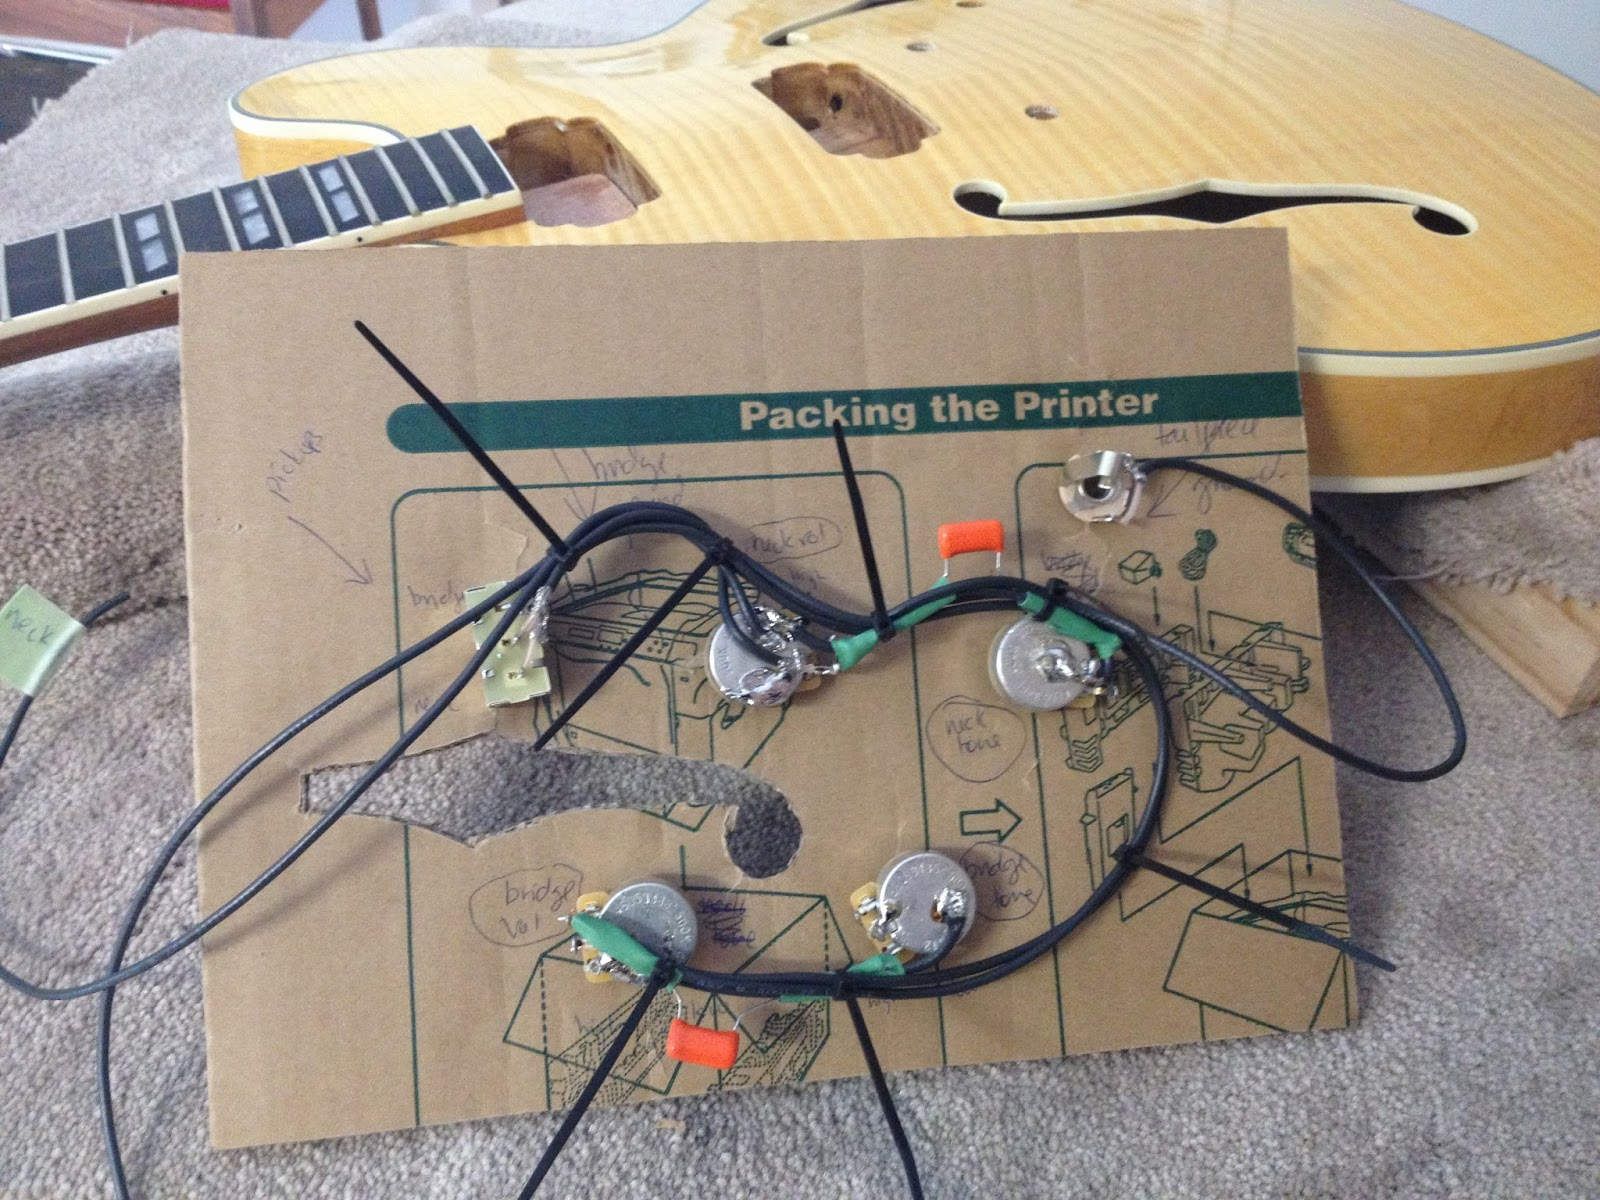 Guitar kit builder 12 string 335 vintage 50s wiring harness at present i satisfied myself with a simple modification to the 50s vintage wiring scheme to allow the volume pots to operate independently asfbconference2016 Gallery